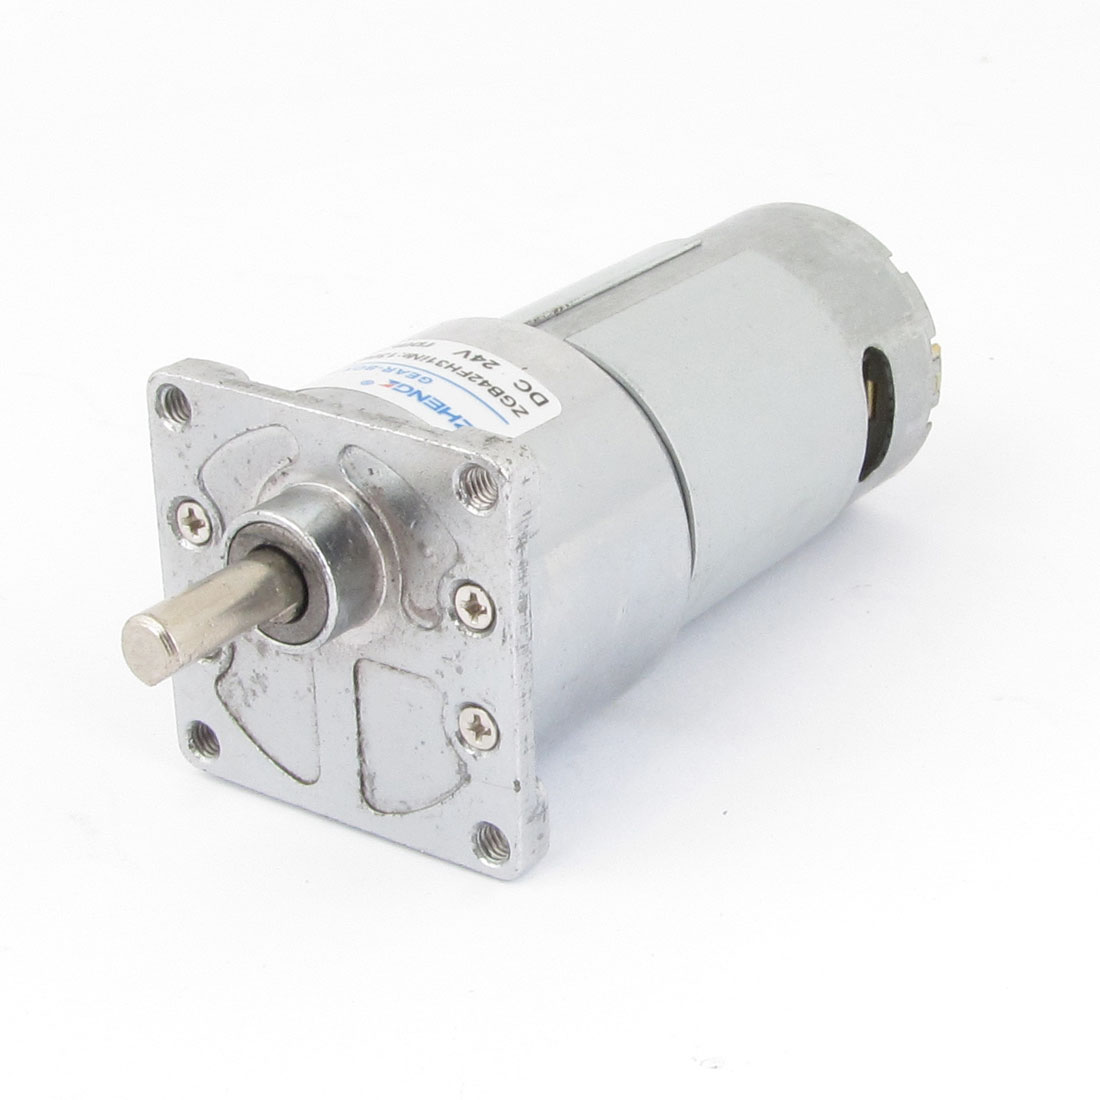 100RPM Rotate Speed Flange Mount Electric Geared Motor 24VDC